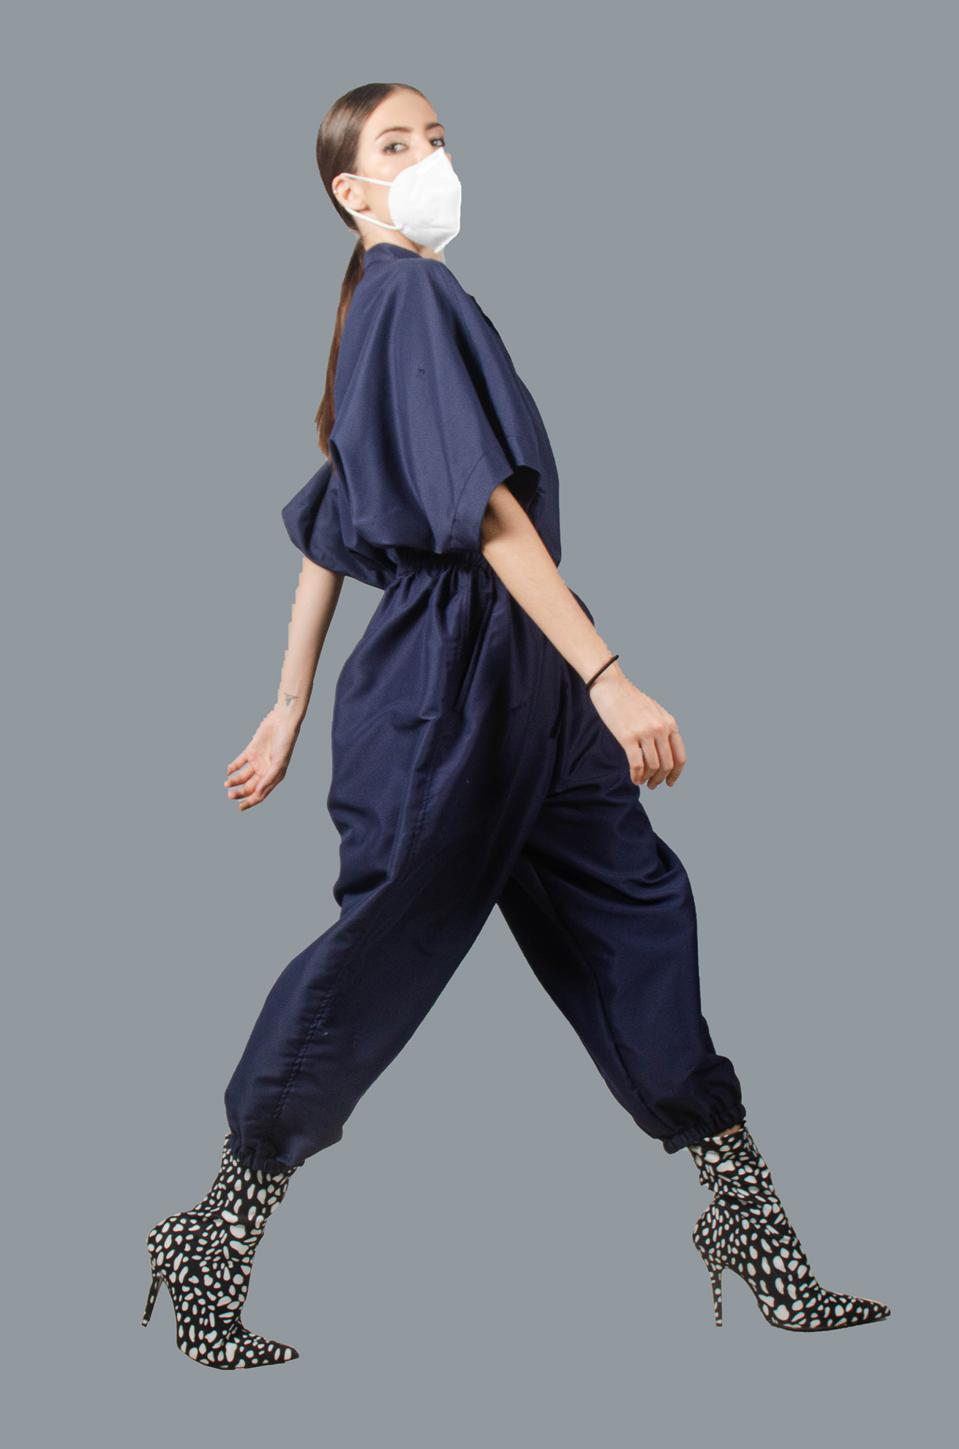 A relaxed fit PPE suit by Puey Quinones